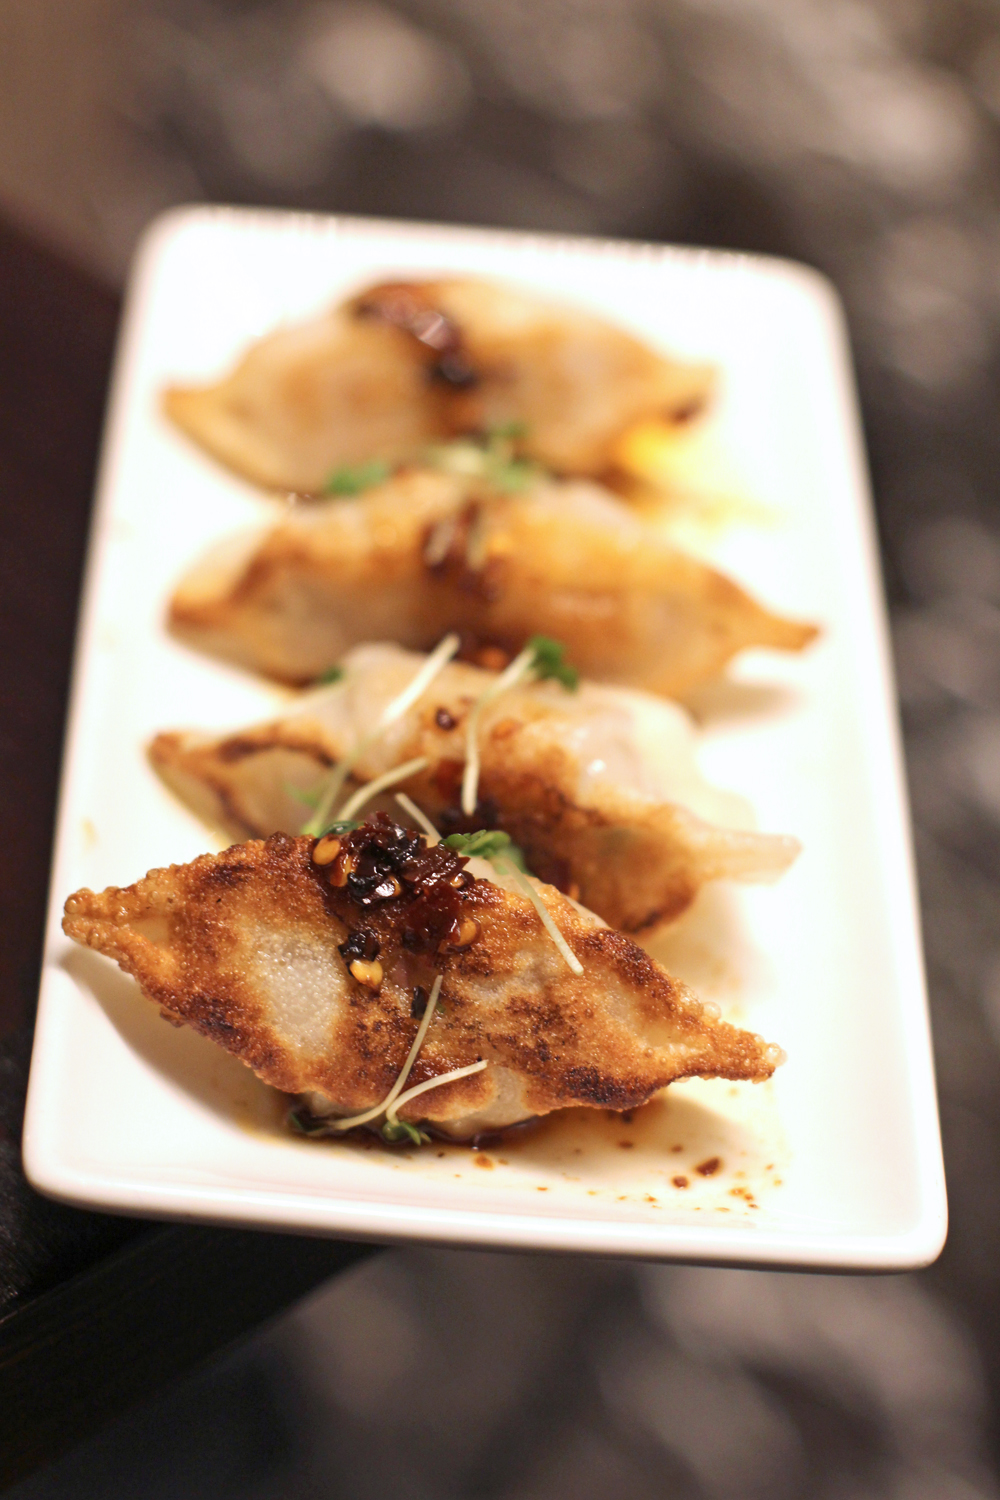 Gyoza dumplings at P.F. Chang's restaurant in London - UK lifestyle blog